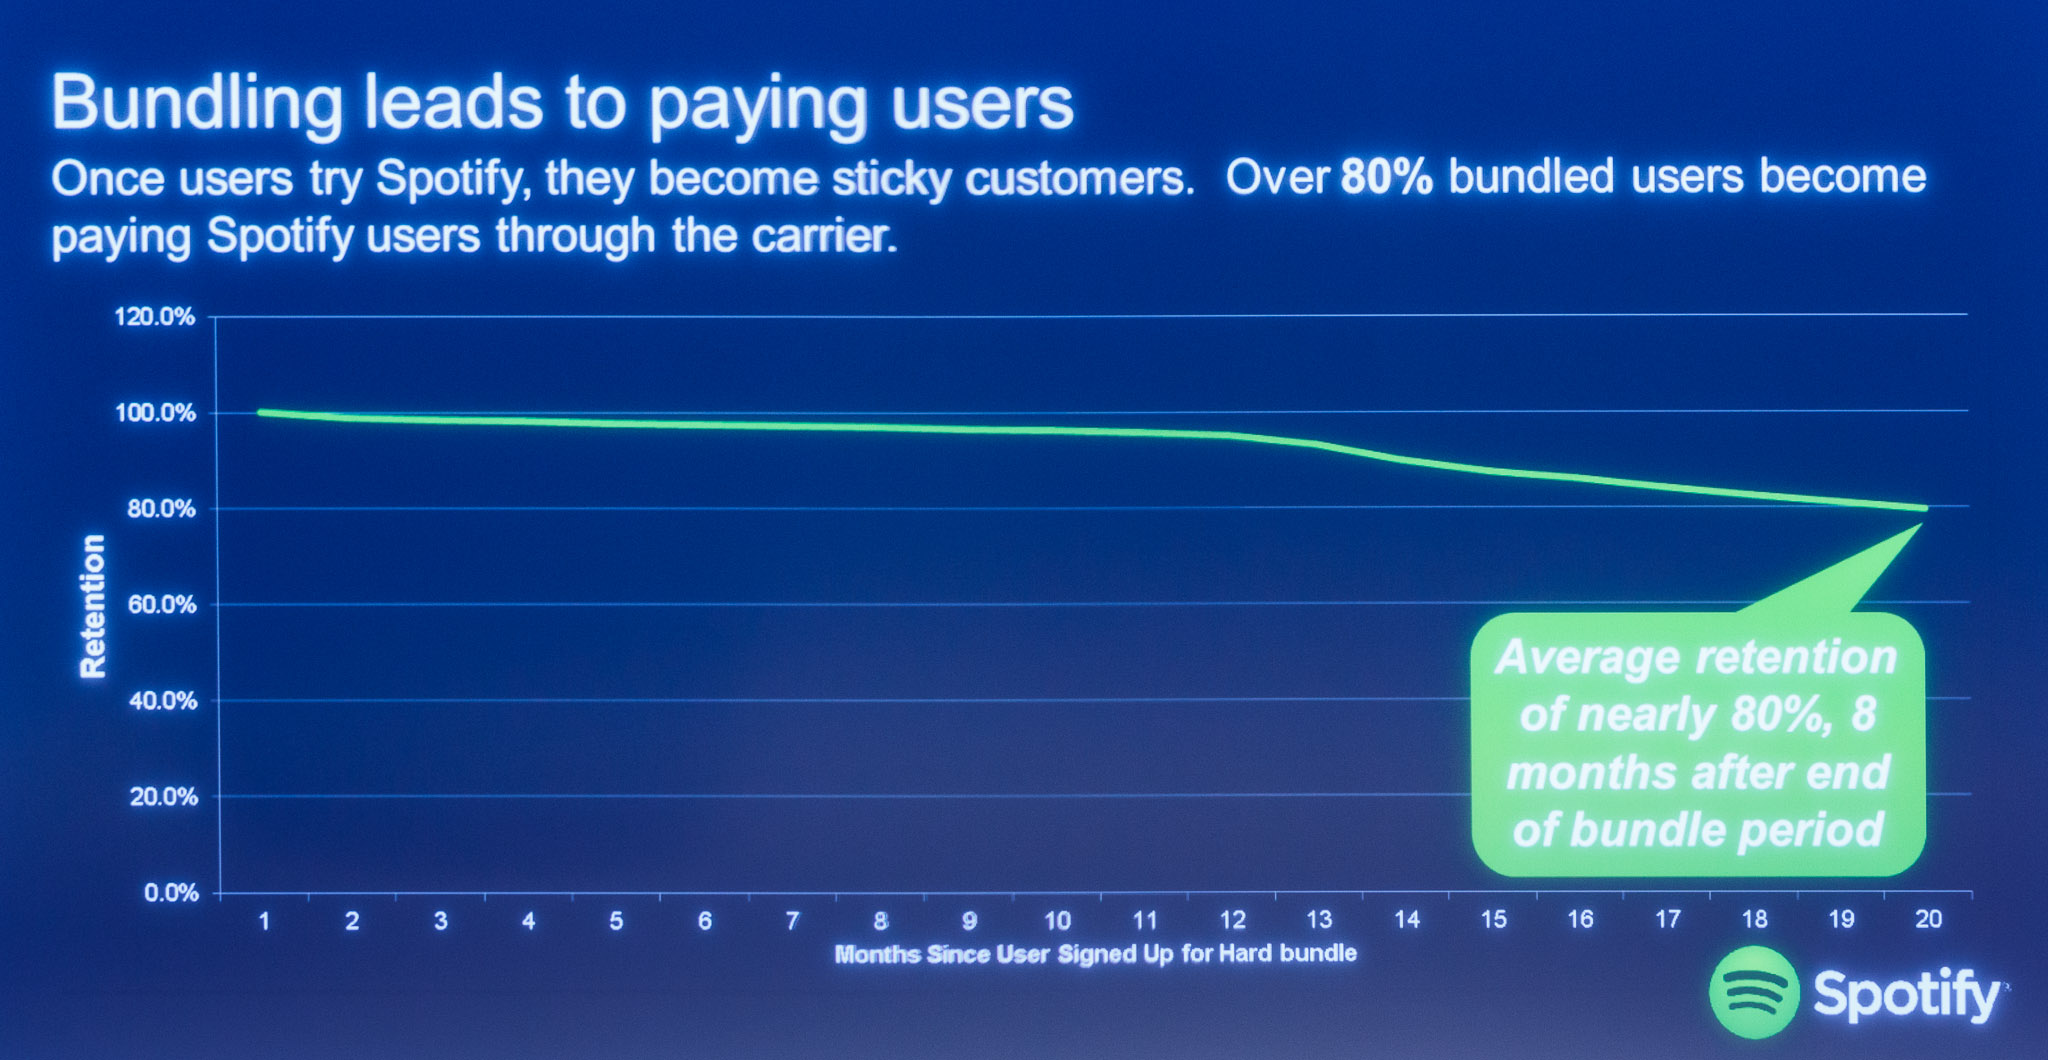 Customers who join Spotify through partnerships with mobile network operators often stay loyal Spotify customers.